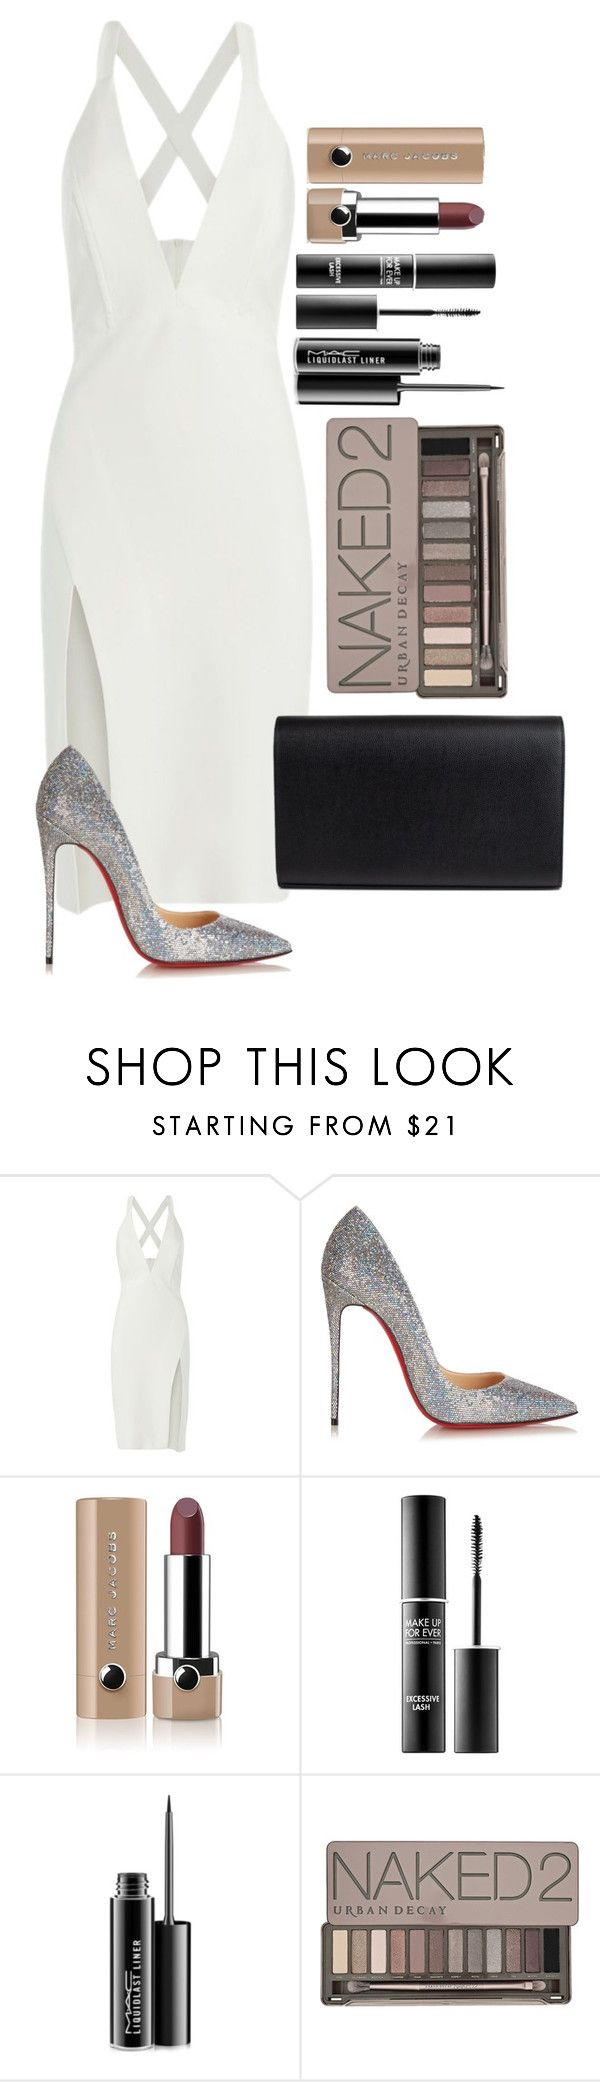 Untitled #1614 by fabianarveloc on Polyvore featuring Mason by Michelle Mason, Christian Louboutin, Marc Jacobs, MAKE UP FOR EVER, MAC Cosmetics, Urban Decay and Yves Saint Laurent